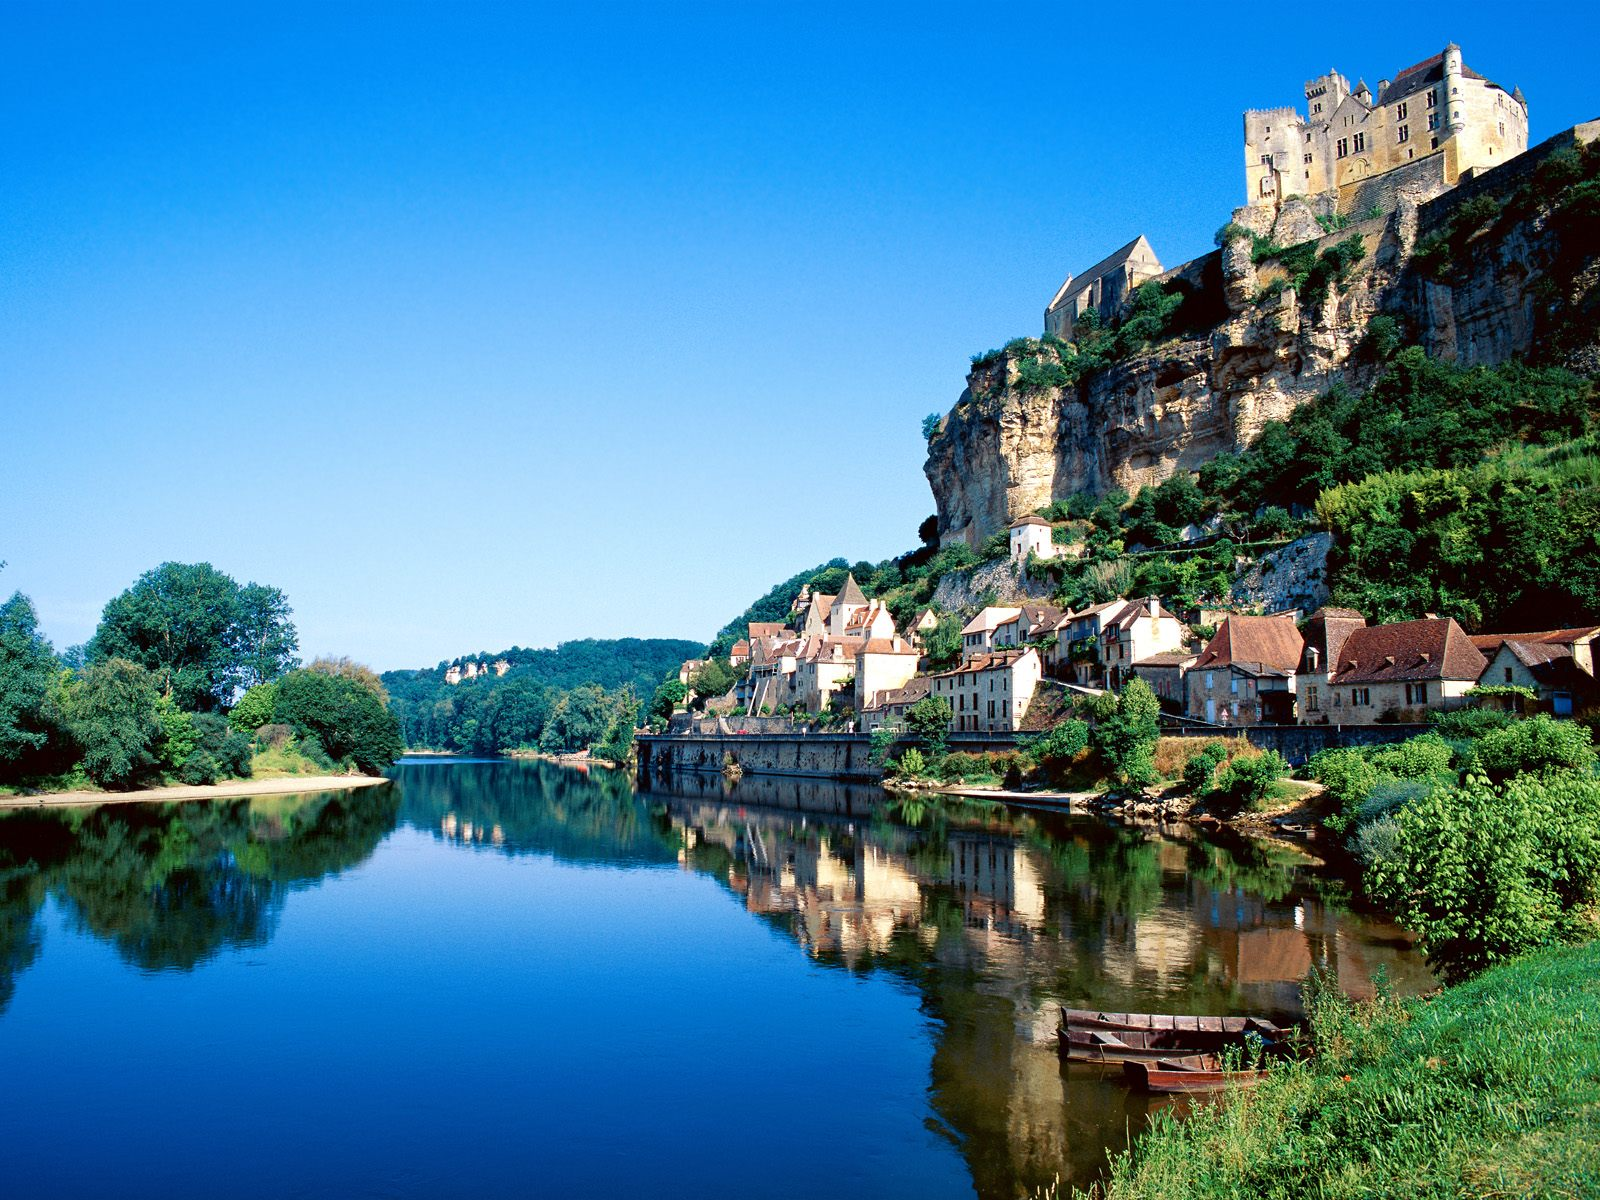 Dordogne property offers exceptional value to British buyers